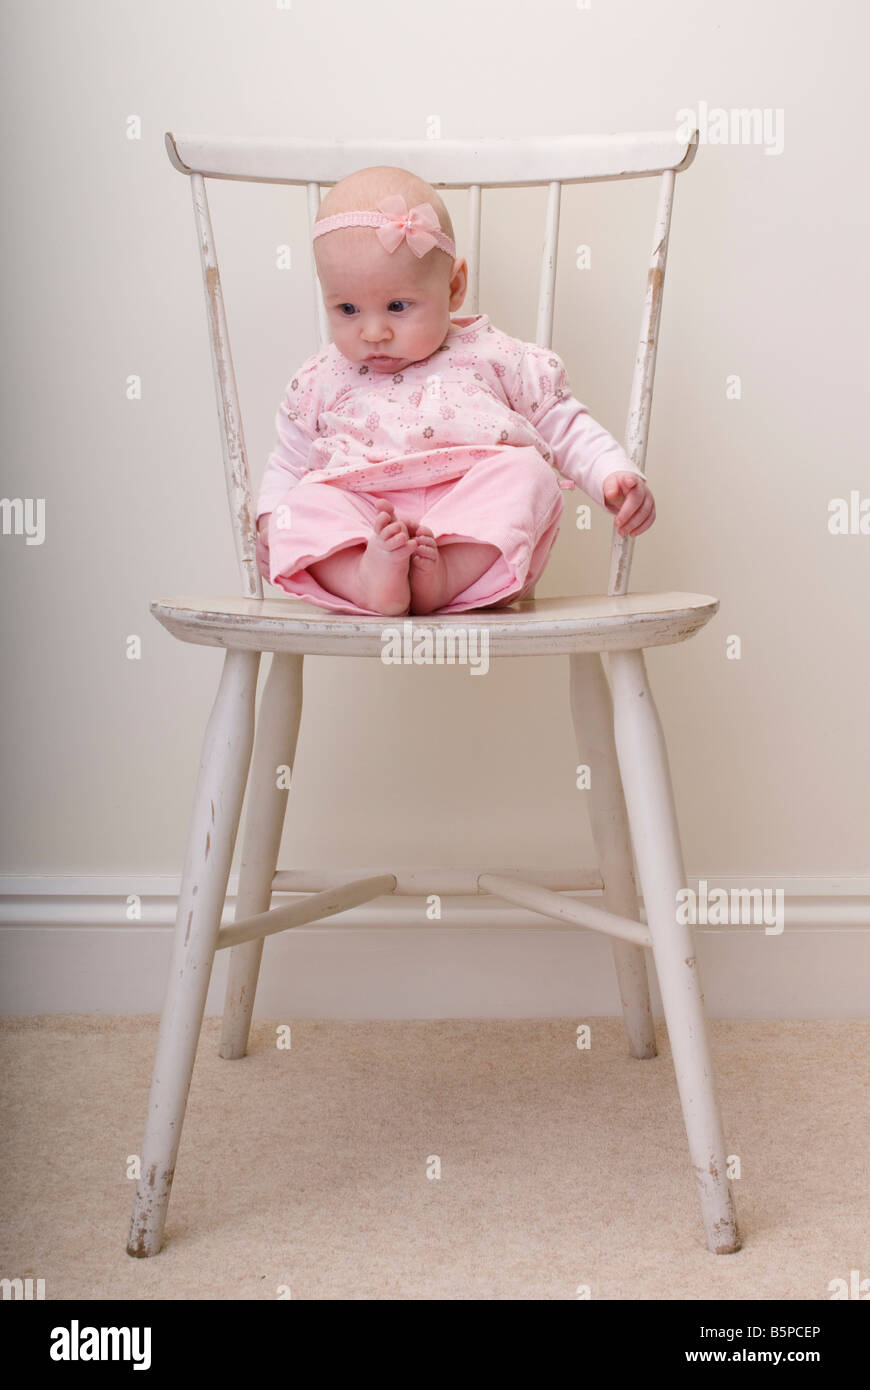 Baby girl sitting on chair stock photo royalty free image for Toddler sitting chair